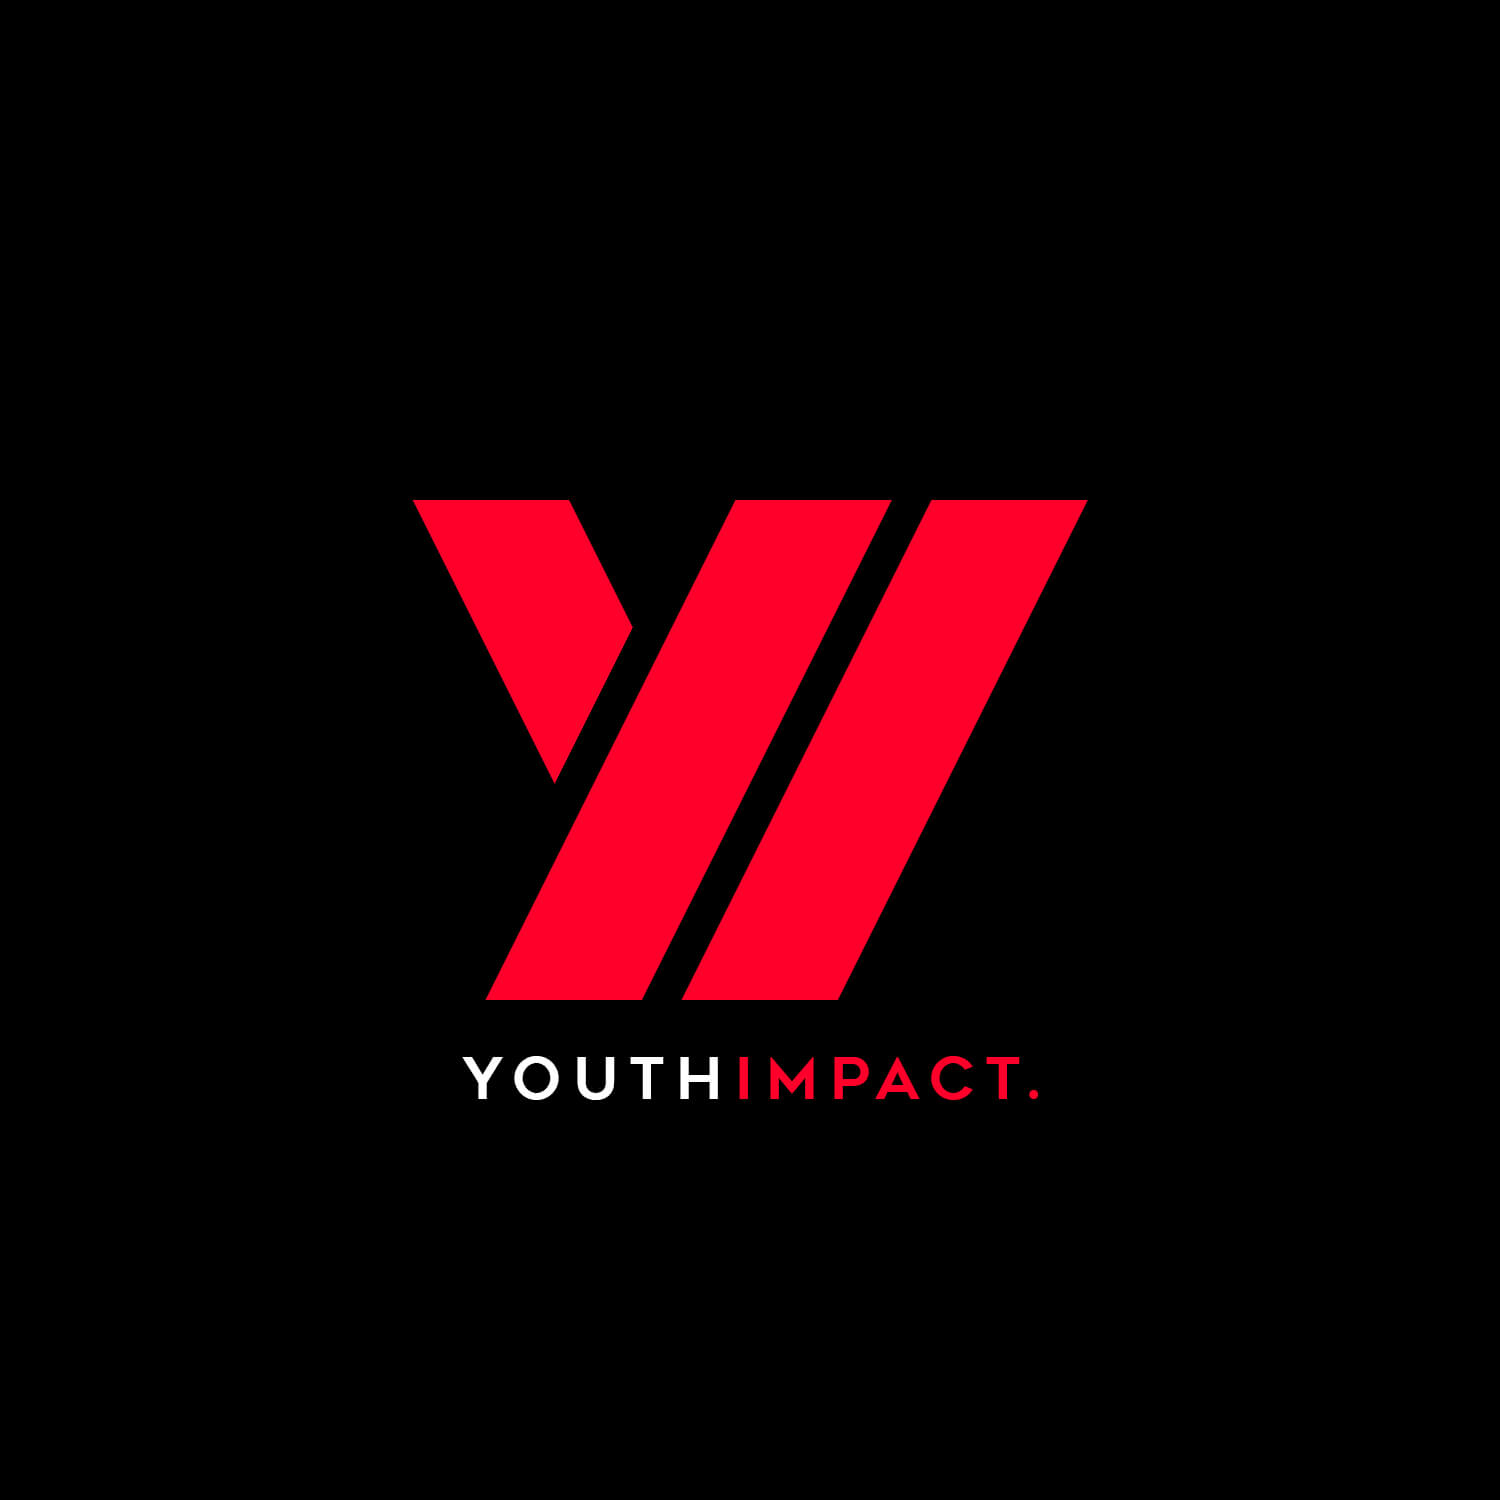 VIrtual Assistant for Youth Impact